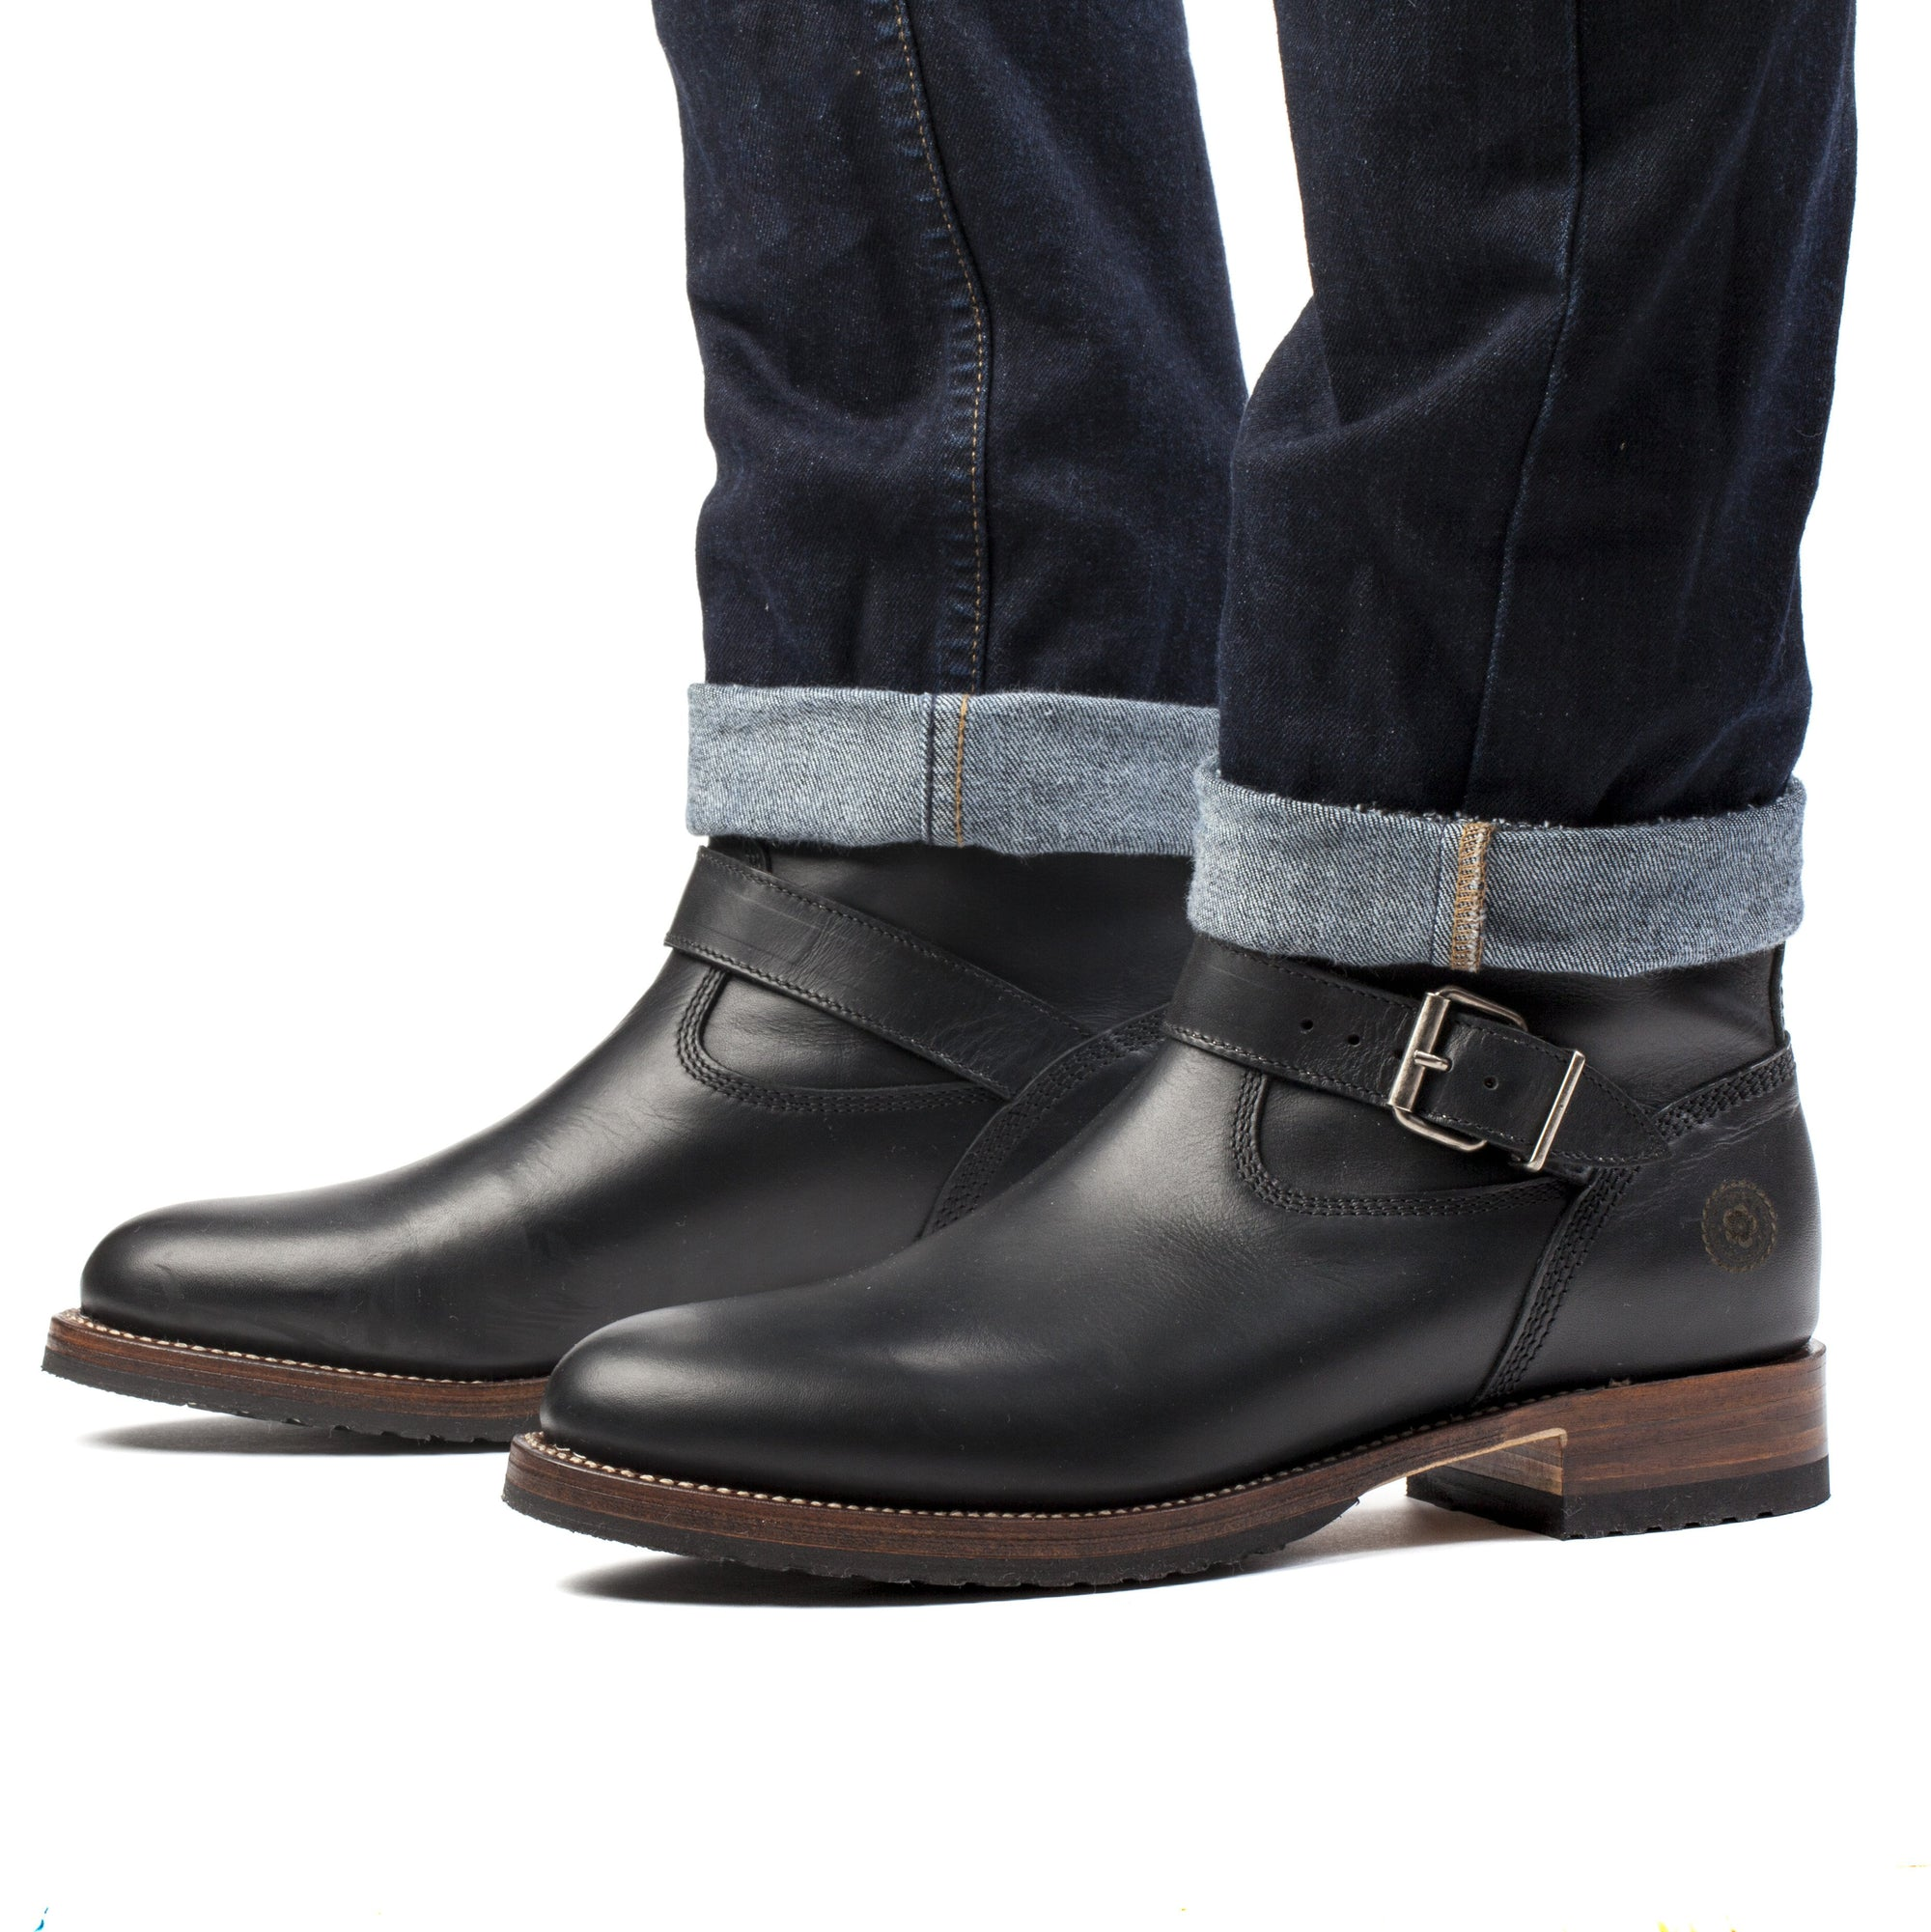 Mens Linesman Boot Black - Classic Engineer Boots - Ranch Road Boots™